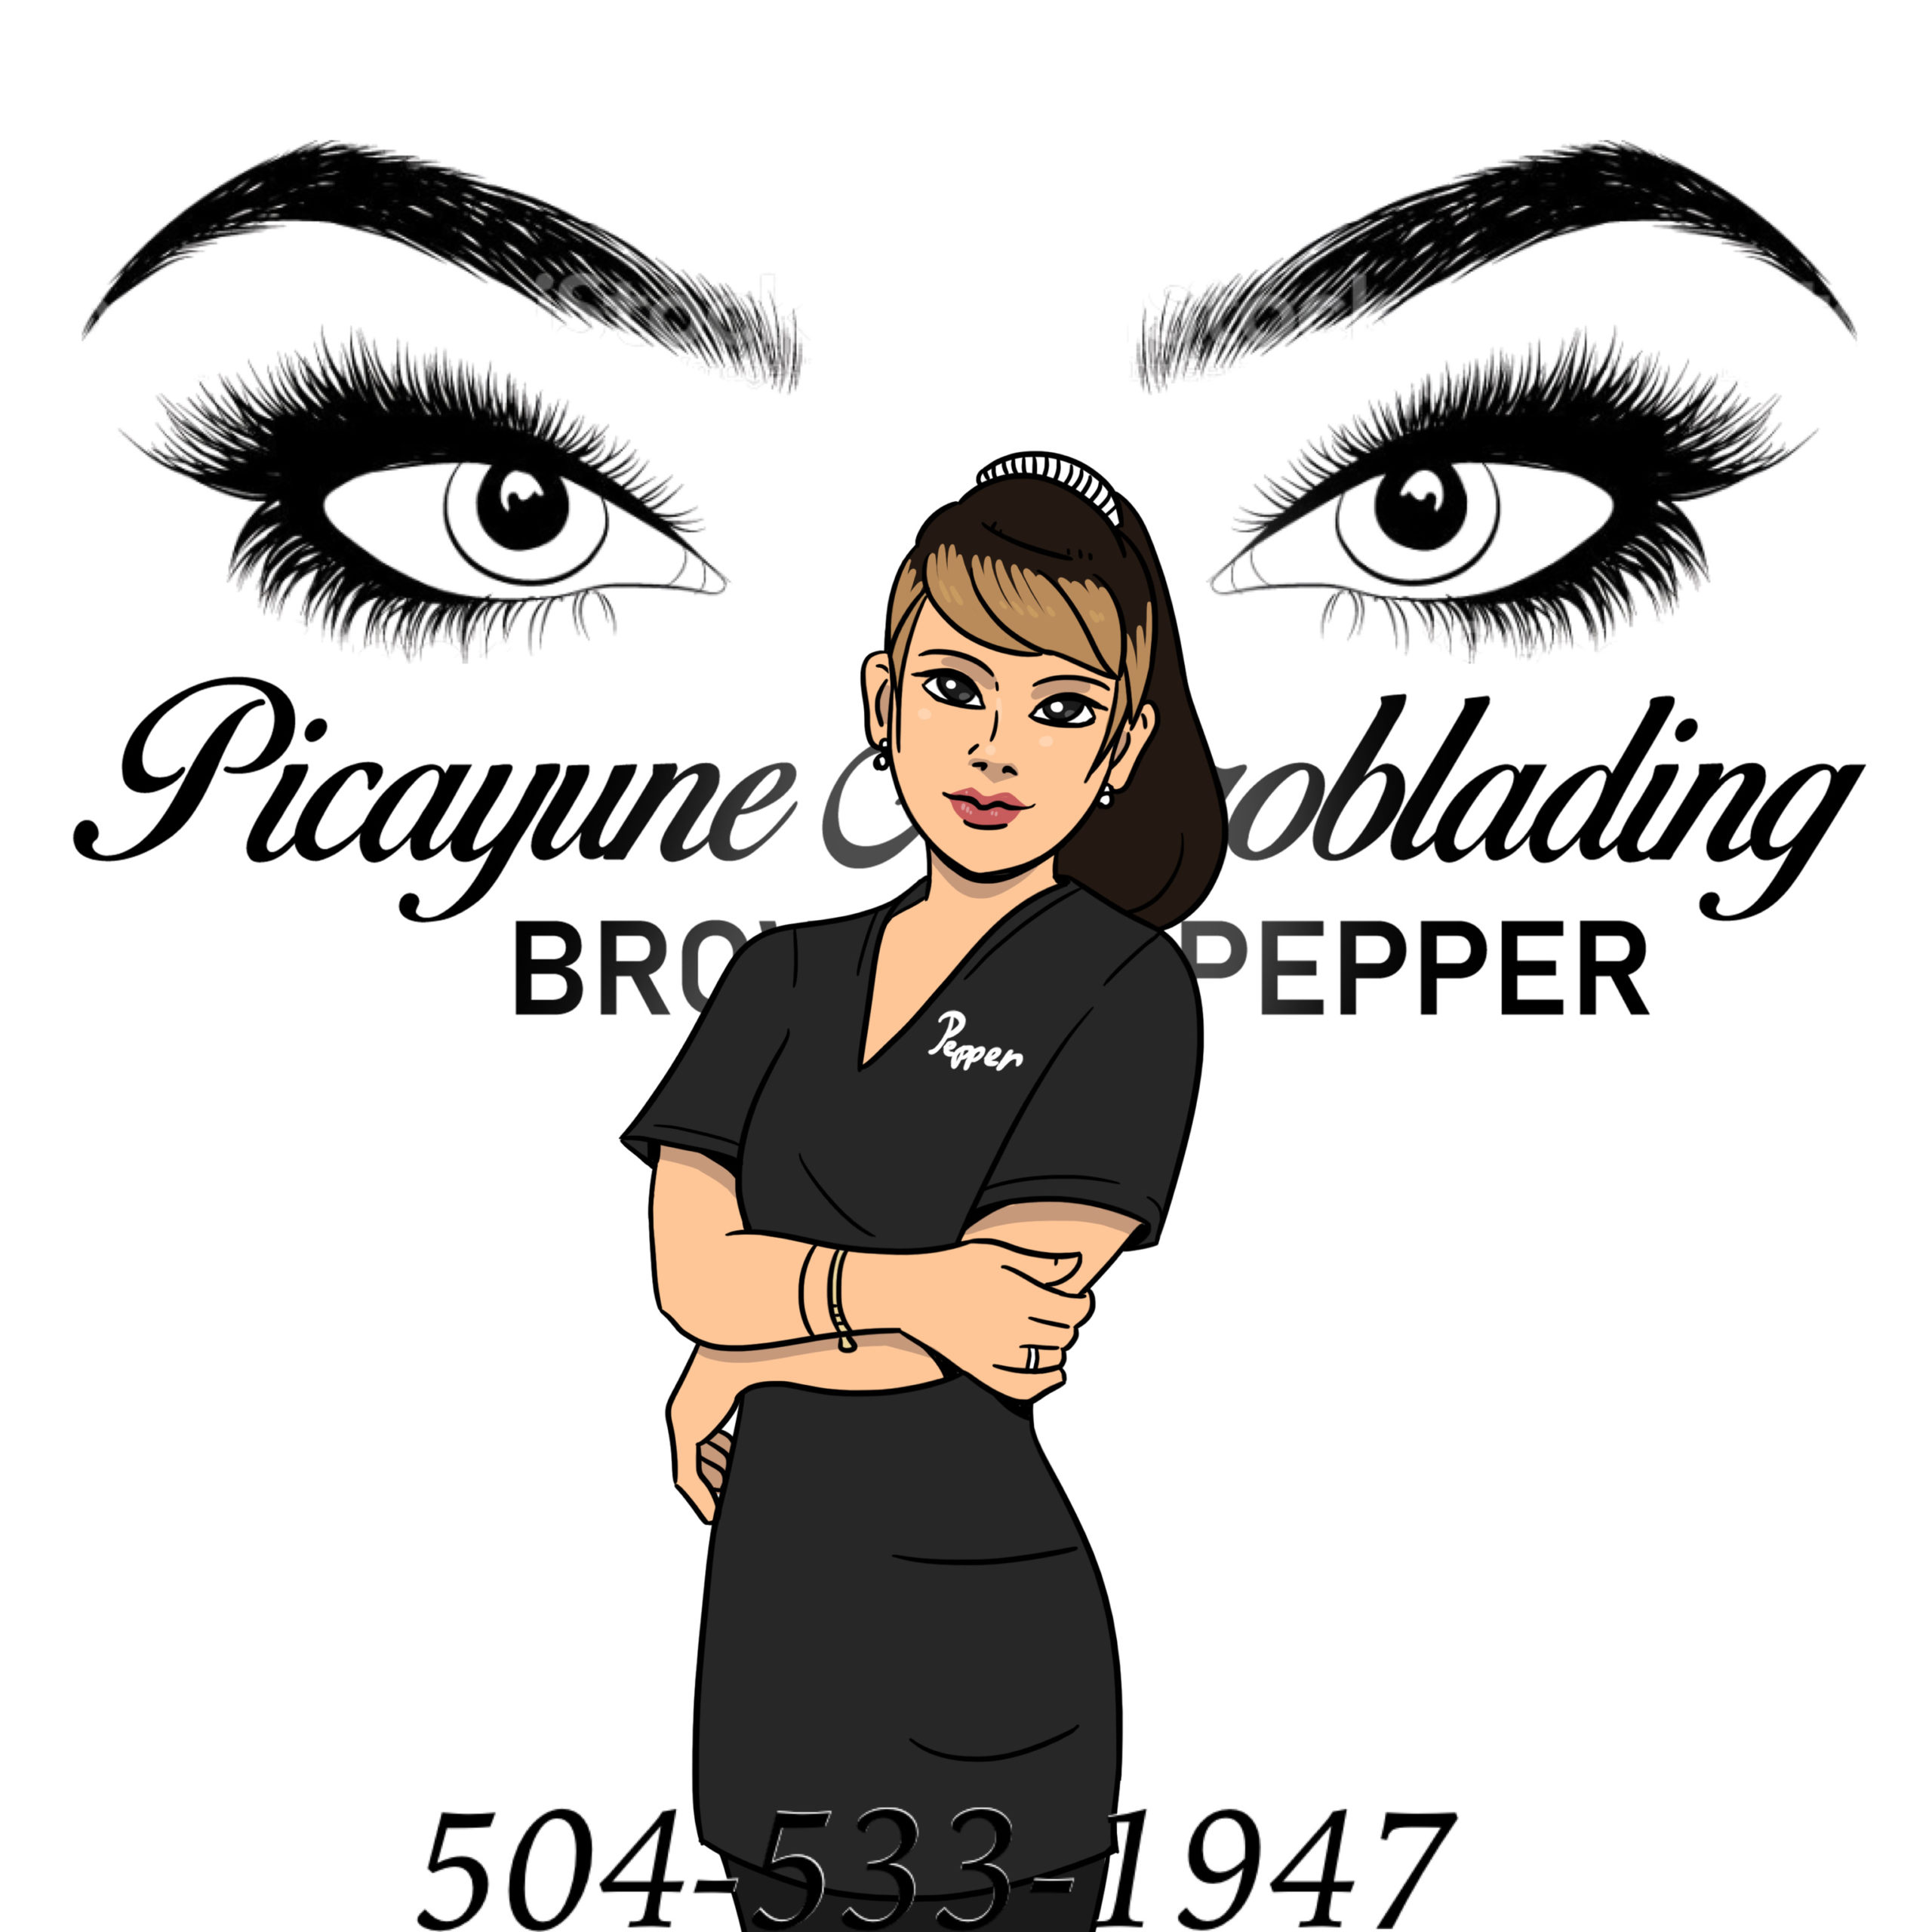 Picayune Microblading Finally a 6D artist in the New Orleans area